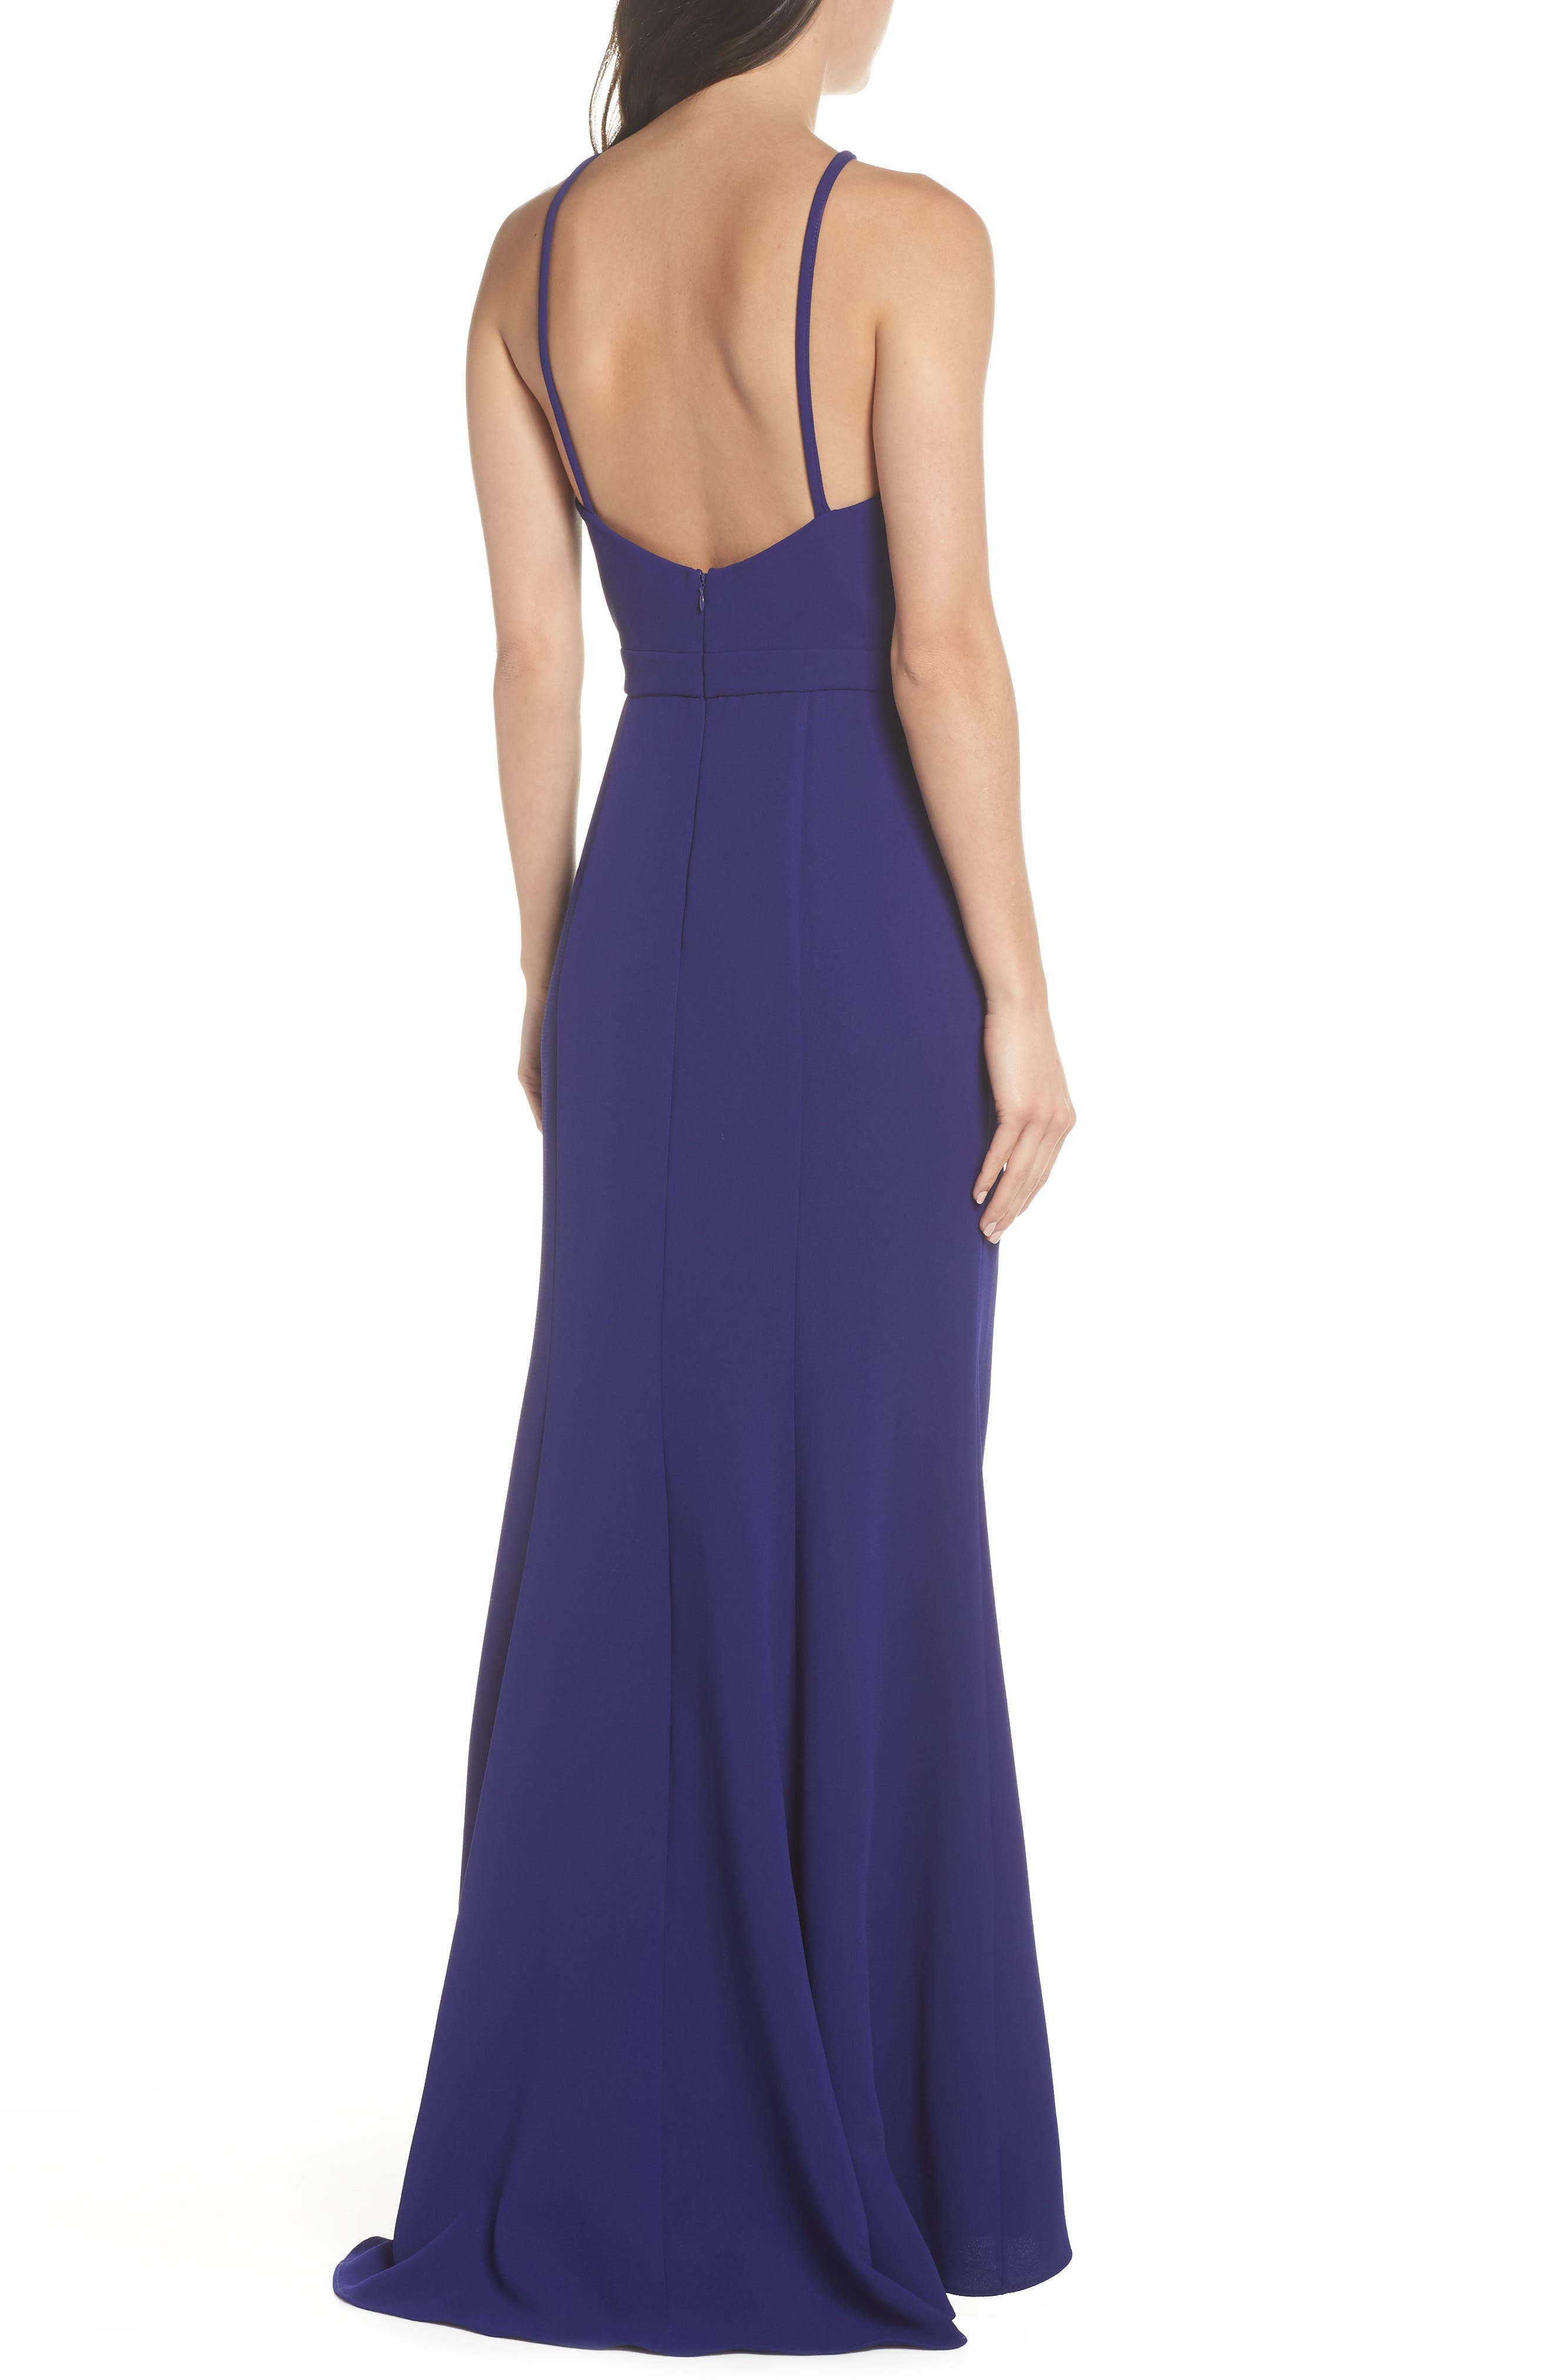 High Neck Gown,                             Alternate thumbnail 2, color,                             430